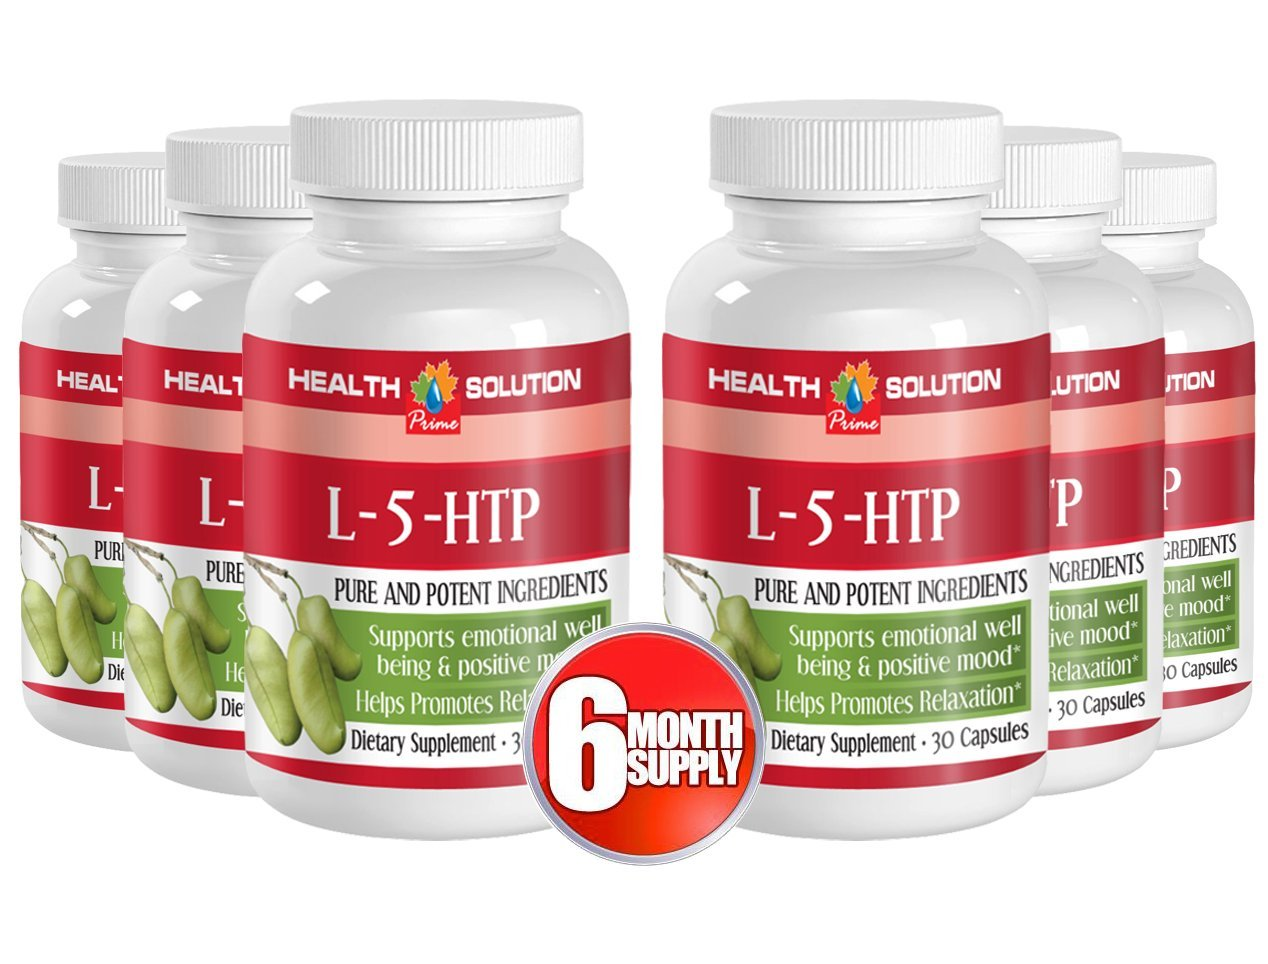 5 htp l tyrosine - L-5-HTP - brain and memory support (6 Bottles) by Health Solution Prime